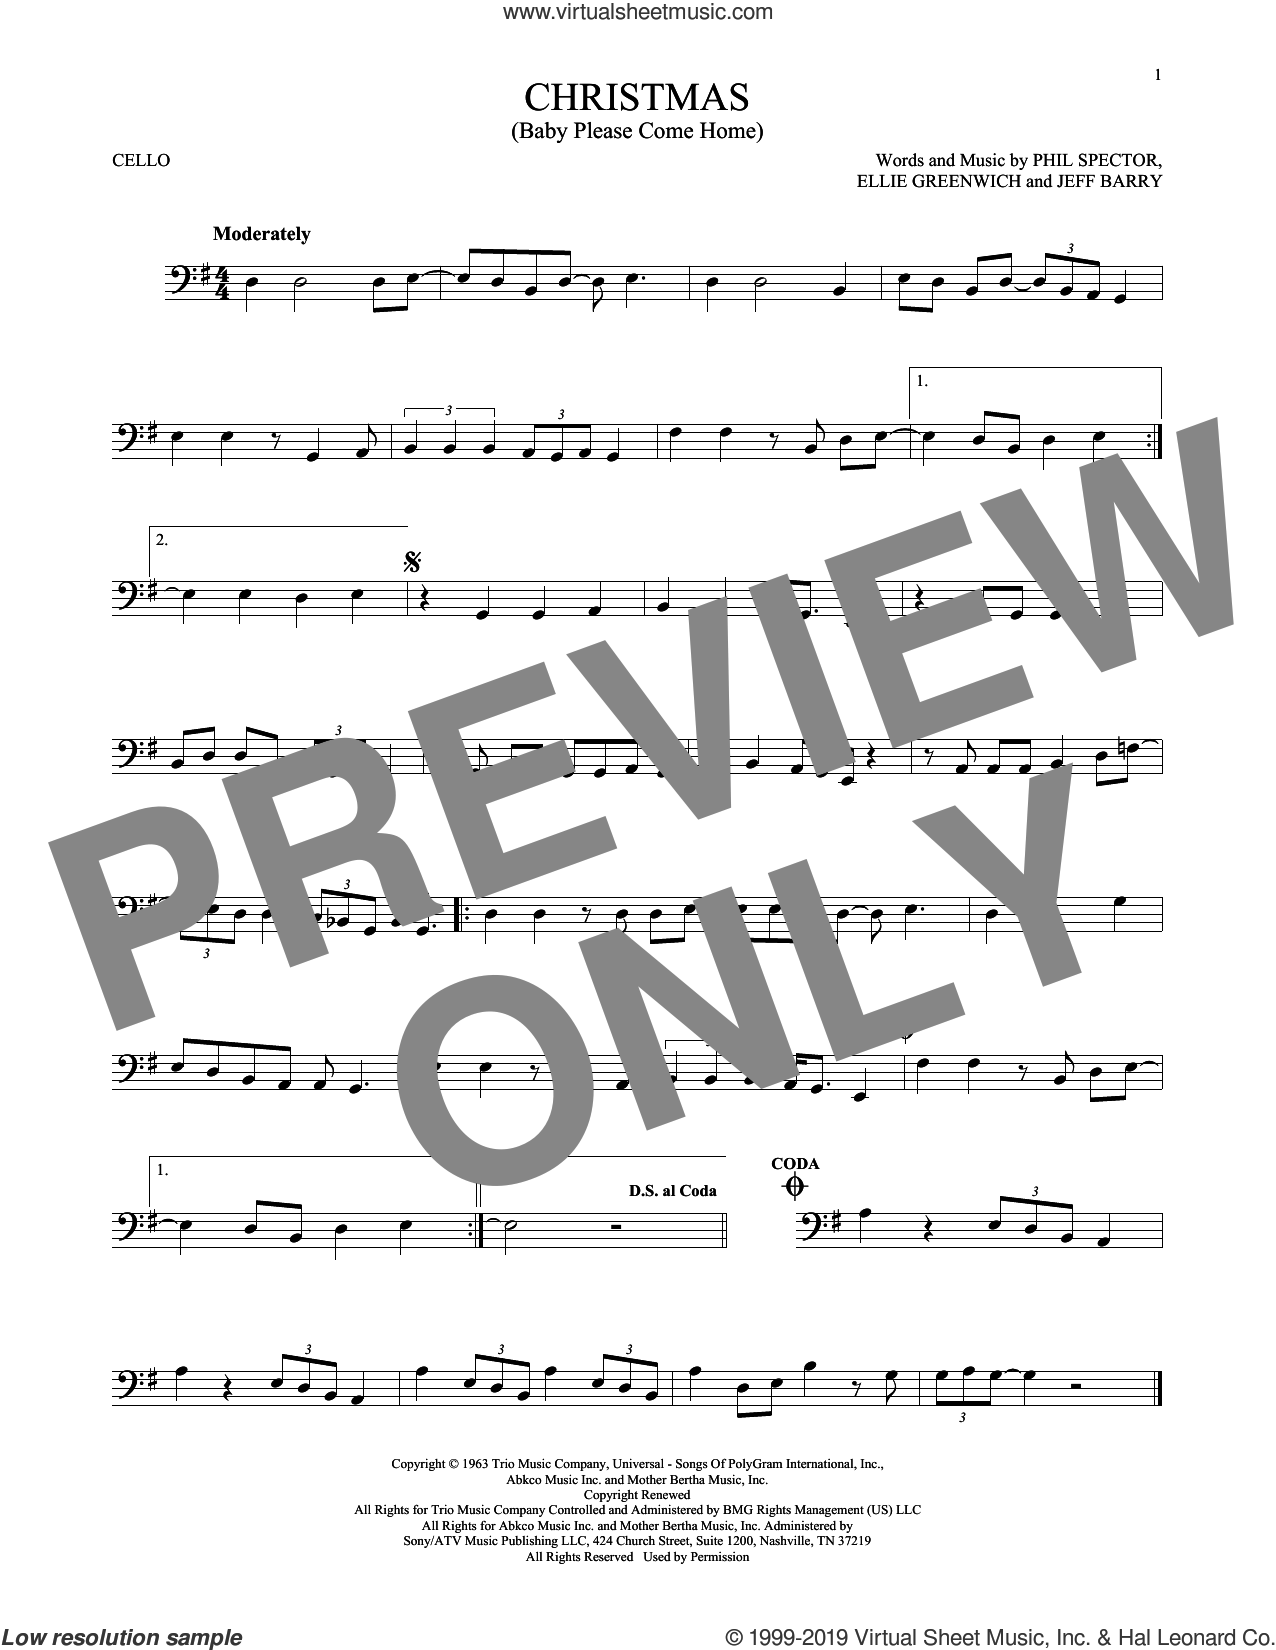 Christmas (Baby Please Come Home) sheet music for cello solo by Mariah Carey, Ellie Greenwich, Jeff Barry and Phil Spector, intermediate skill level